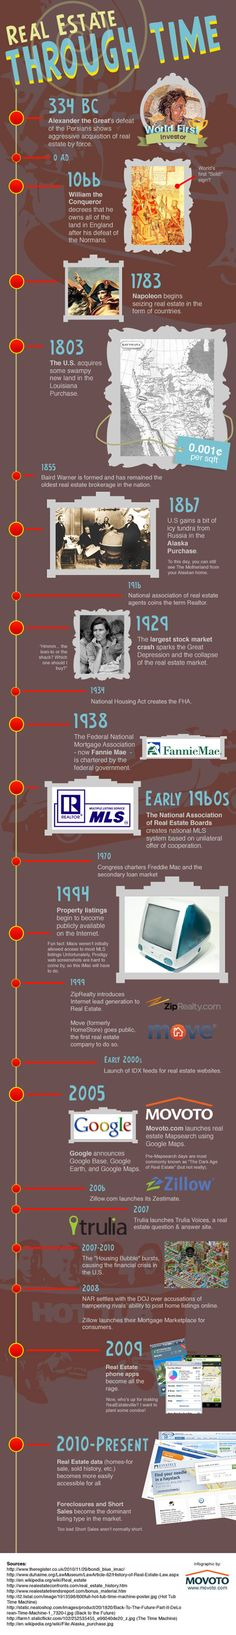 Real Estate through time, an infographic from to now., Informations About Real Estate through time, an infographic from to now. Real Estate Business, Real Estate Investing, Real Estate Marketing, Real Estate Humor, Real Estate Tips, Real Estate Information, Information Graphics, Commercial Real Estate, Investment Property